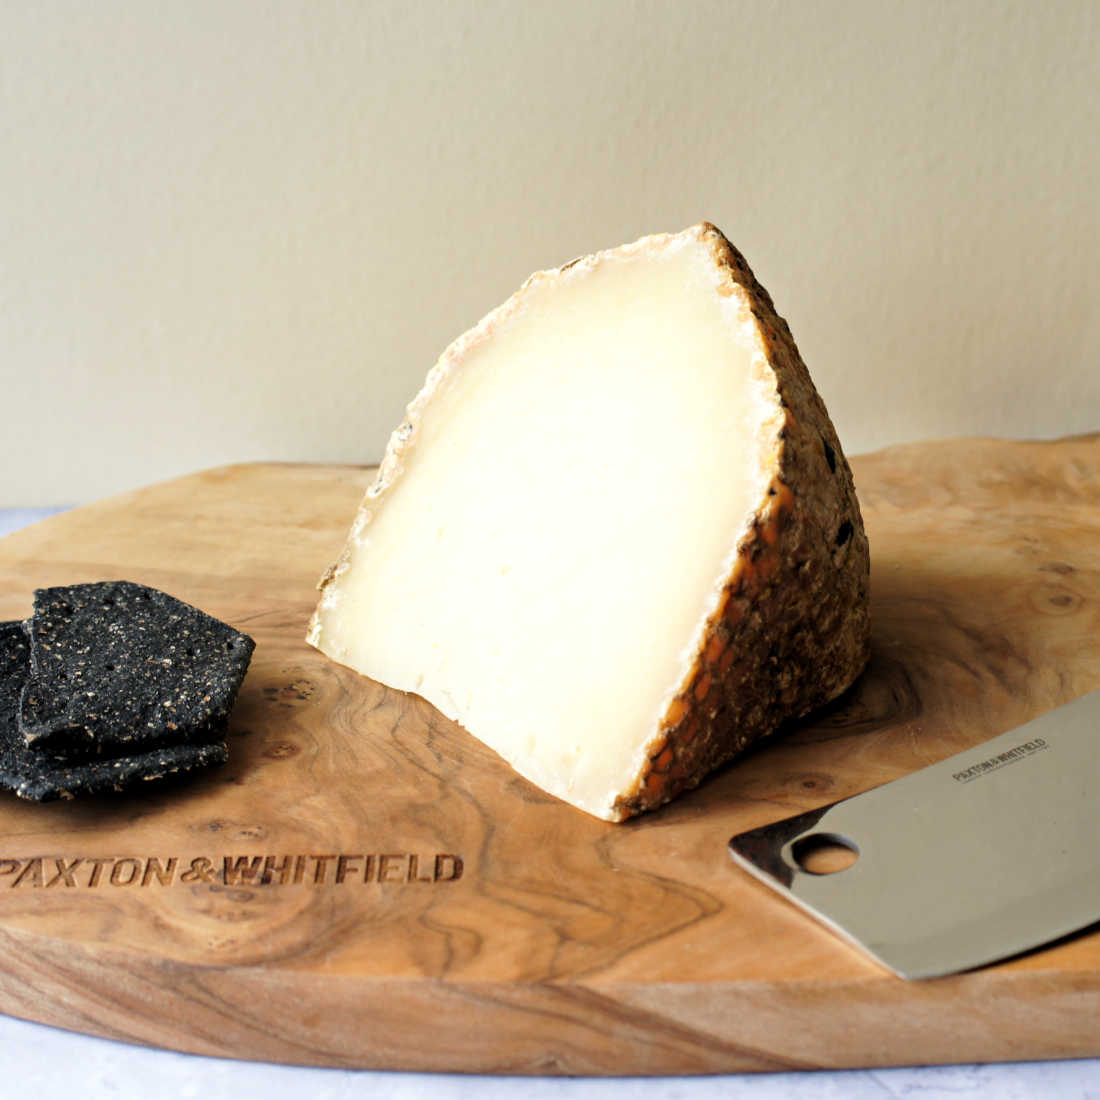 190-Berkswell-Cheese-Low-Res-Web-Main